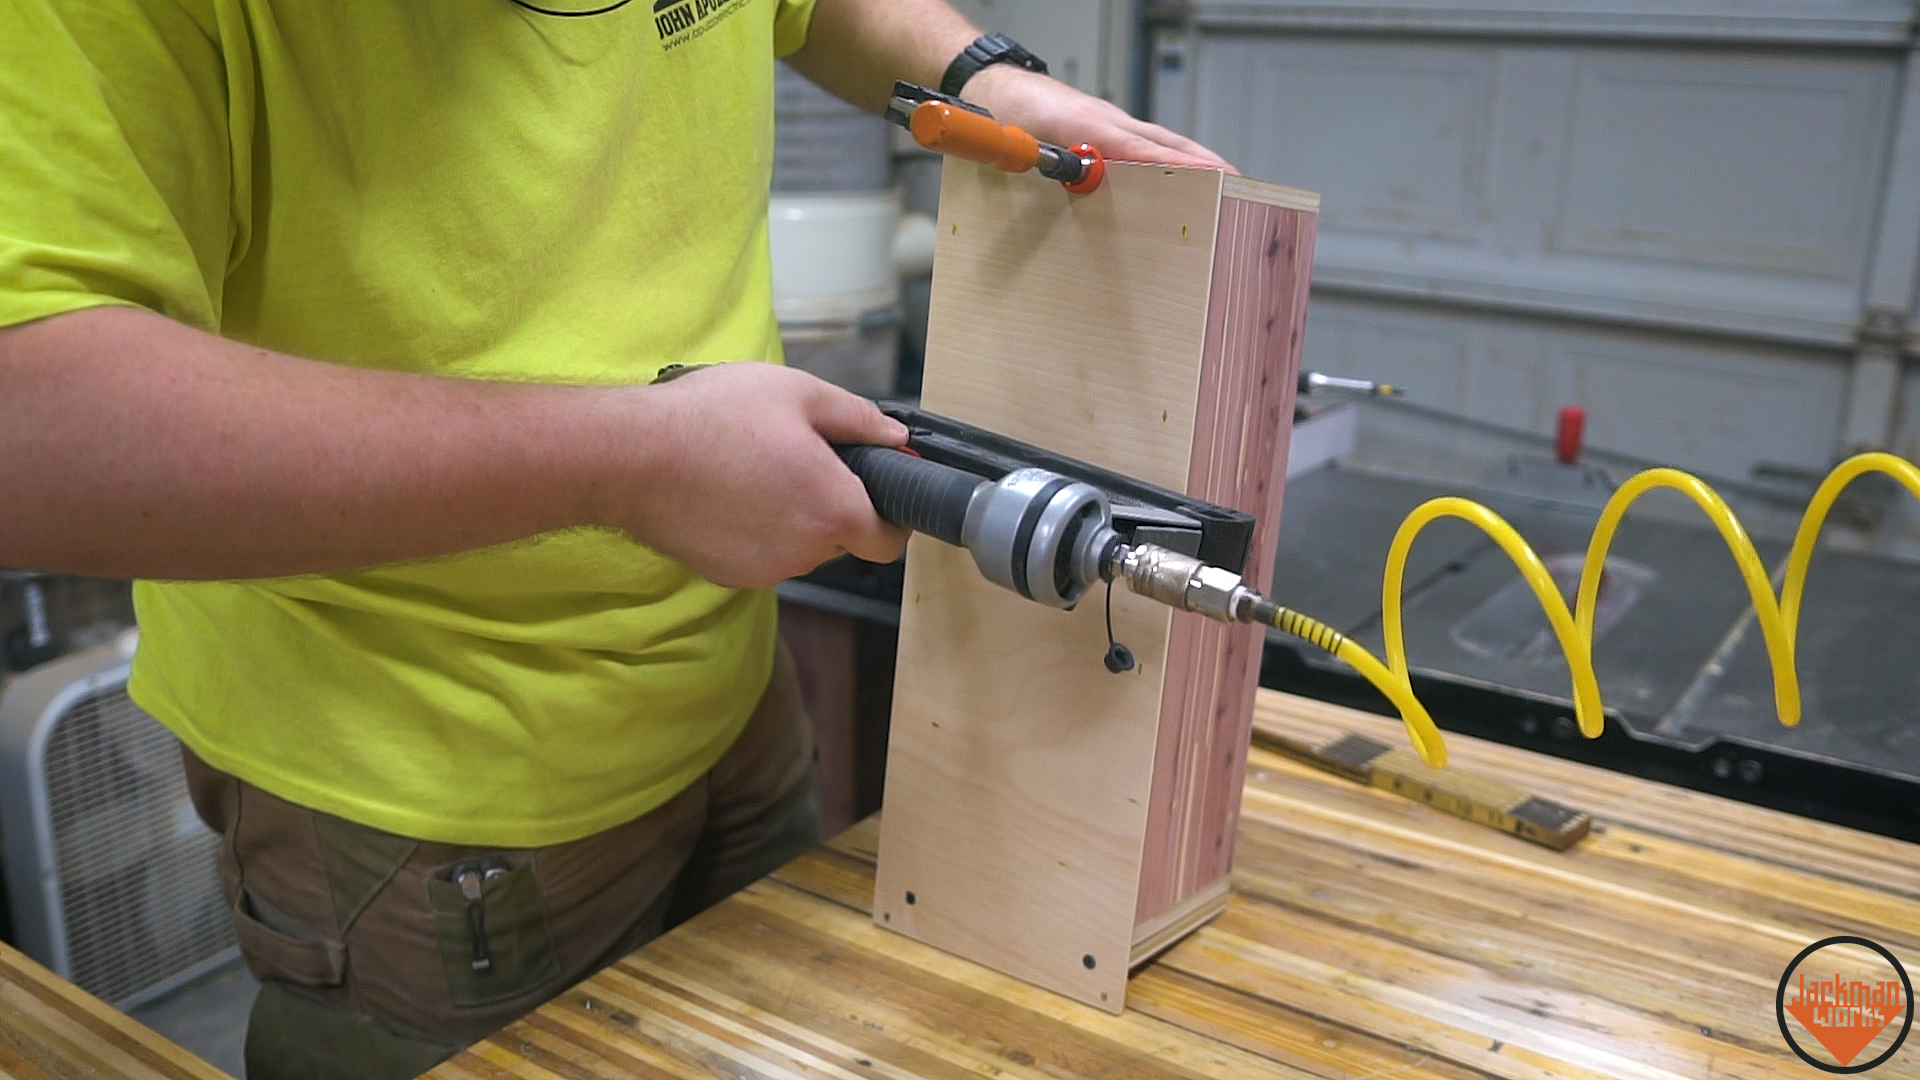 Router table storage cabinet 26 jackman works jackmanjackman worksfence systemrouter tablehow to build a router table woodworkingrouter liftshop storagestorageorganizationworkshop organization greentooth Choice Image